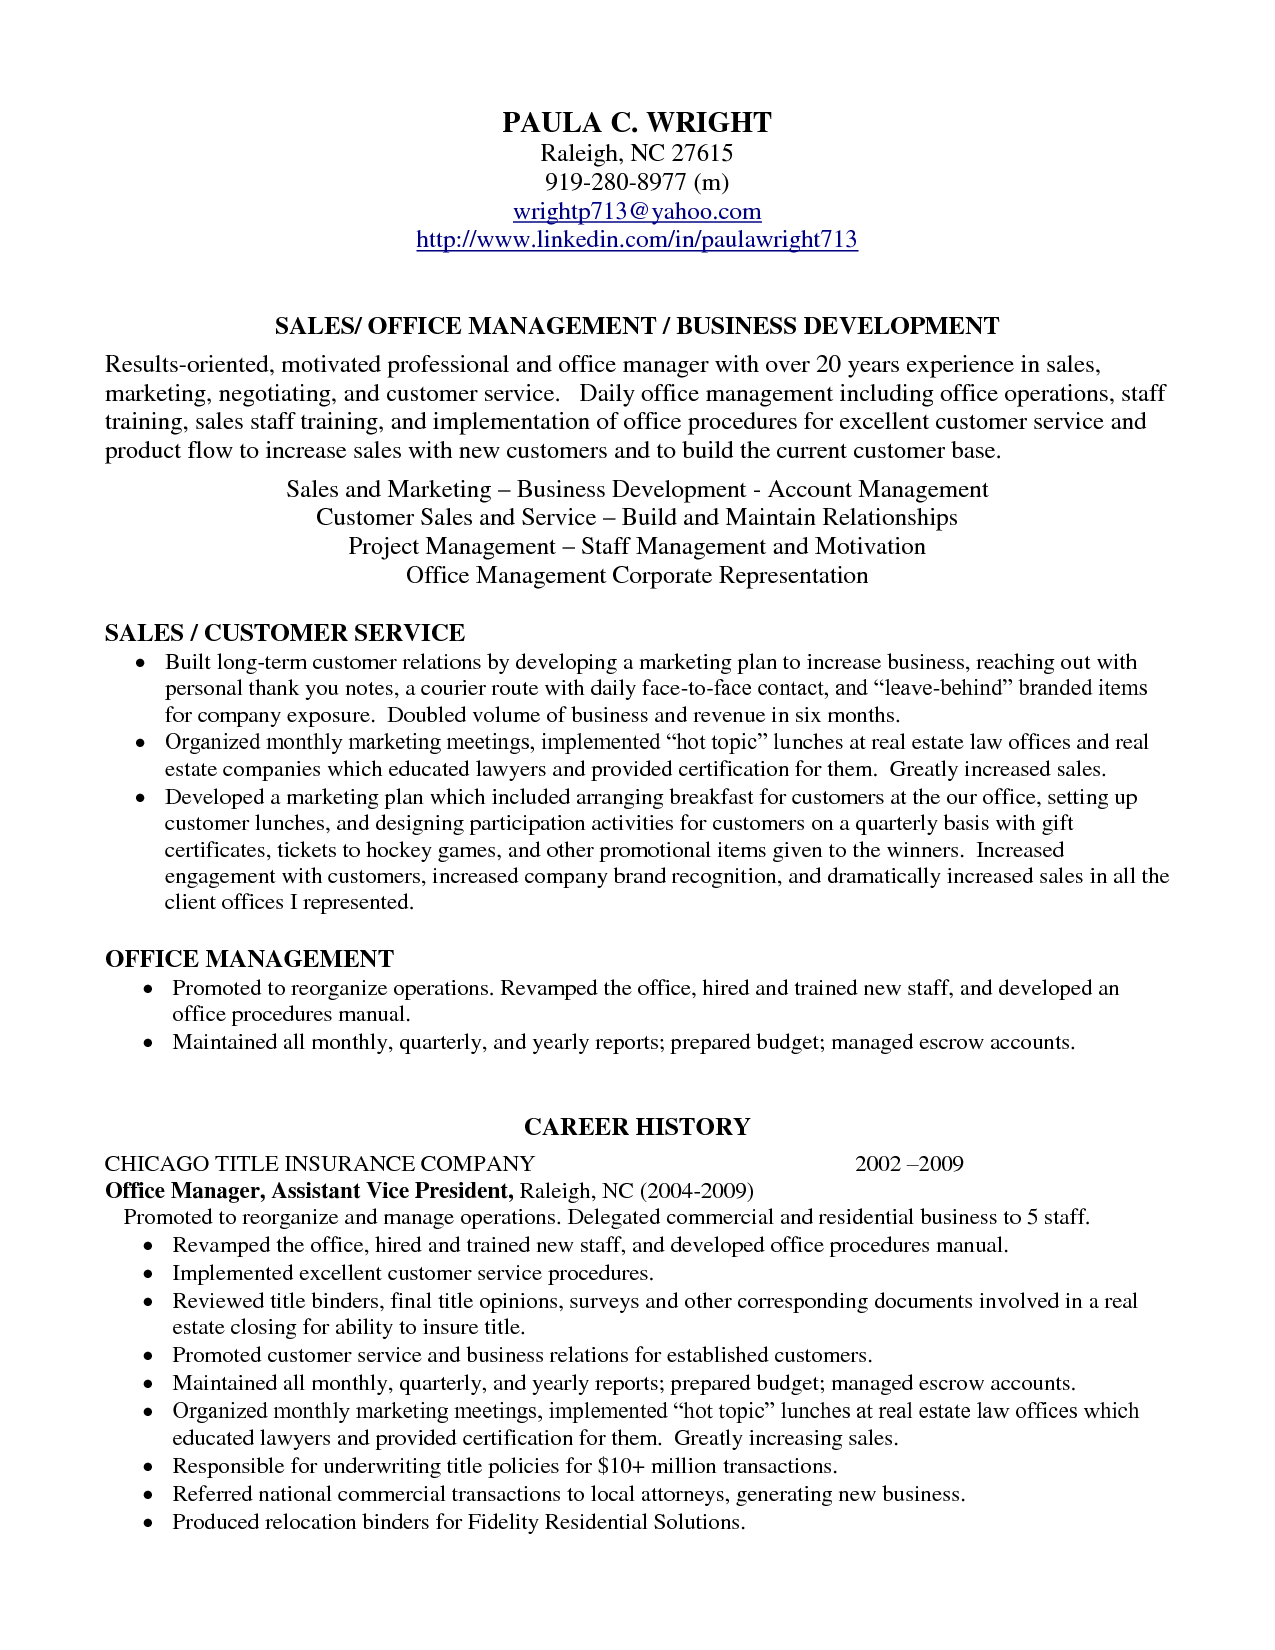 Professional Profile Resume Examples Resume Professional Profile – Samples of Business Profiles